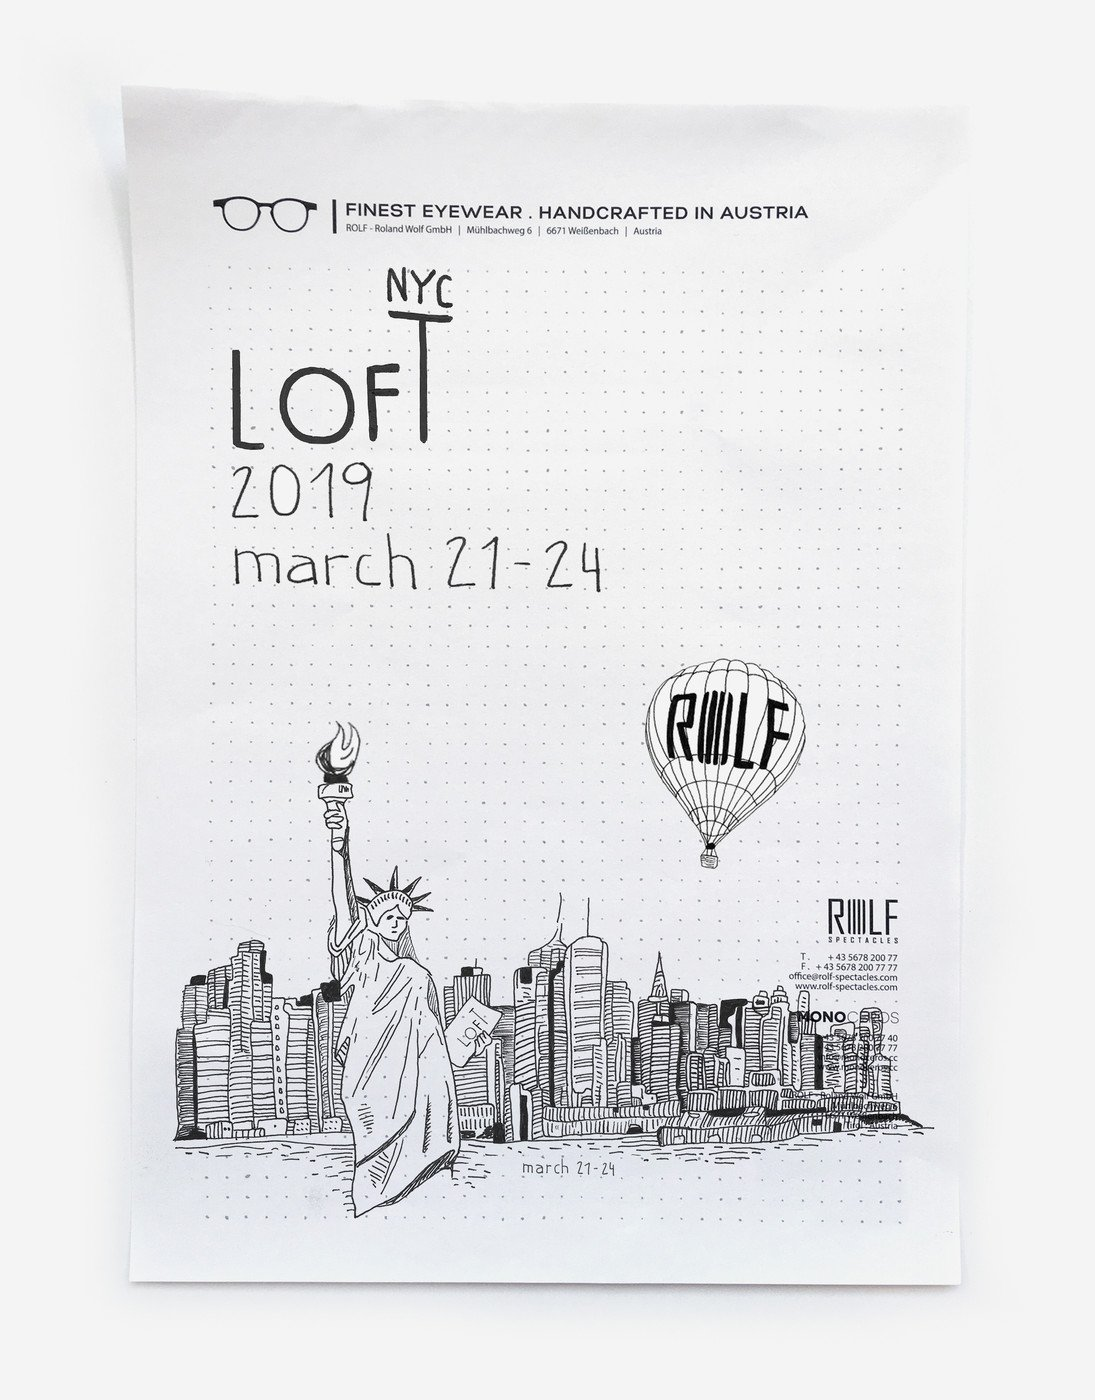 d32cb8ddf77 ROLF Spectacles moves from Tyrol to New York! LOFT NYC - USA March 21 - 24    Hudson Mercantile 500 W 36th St ...